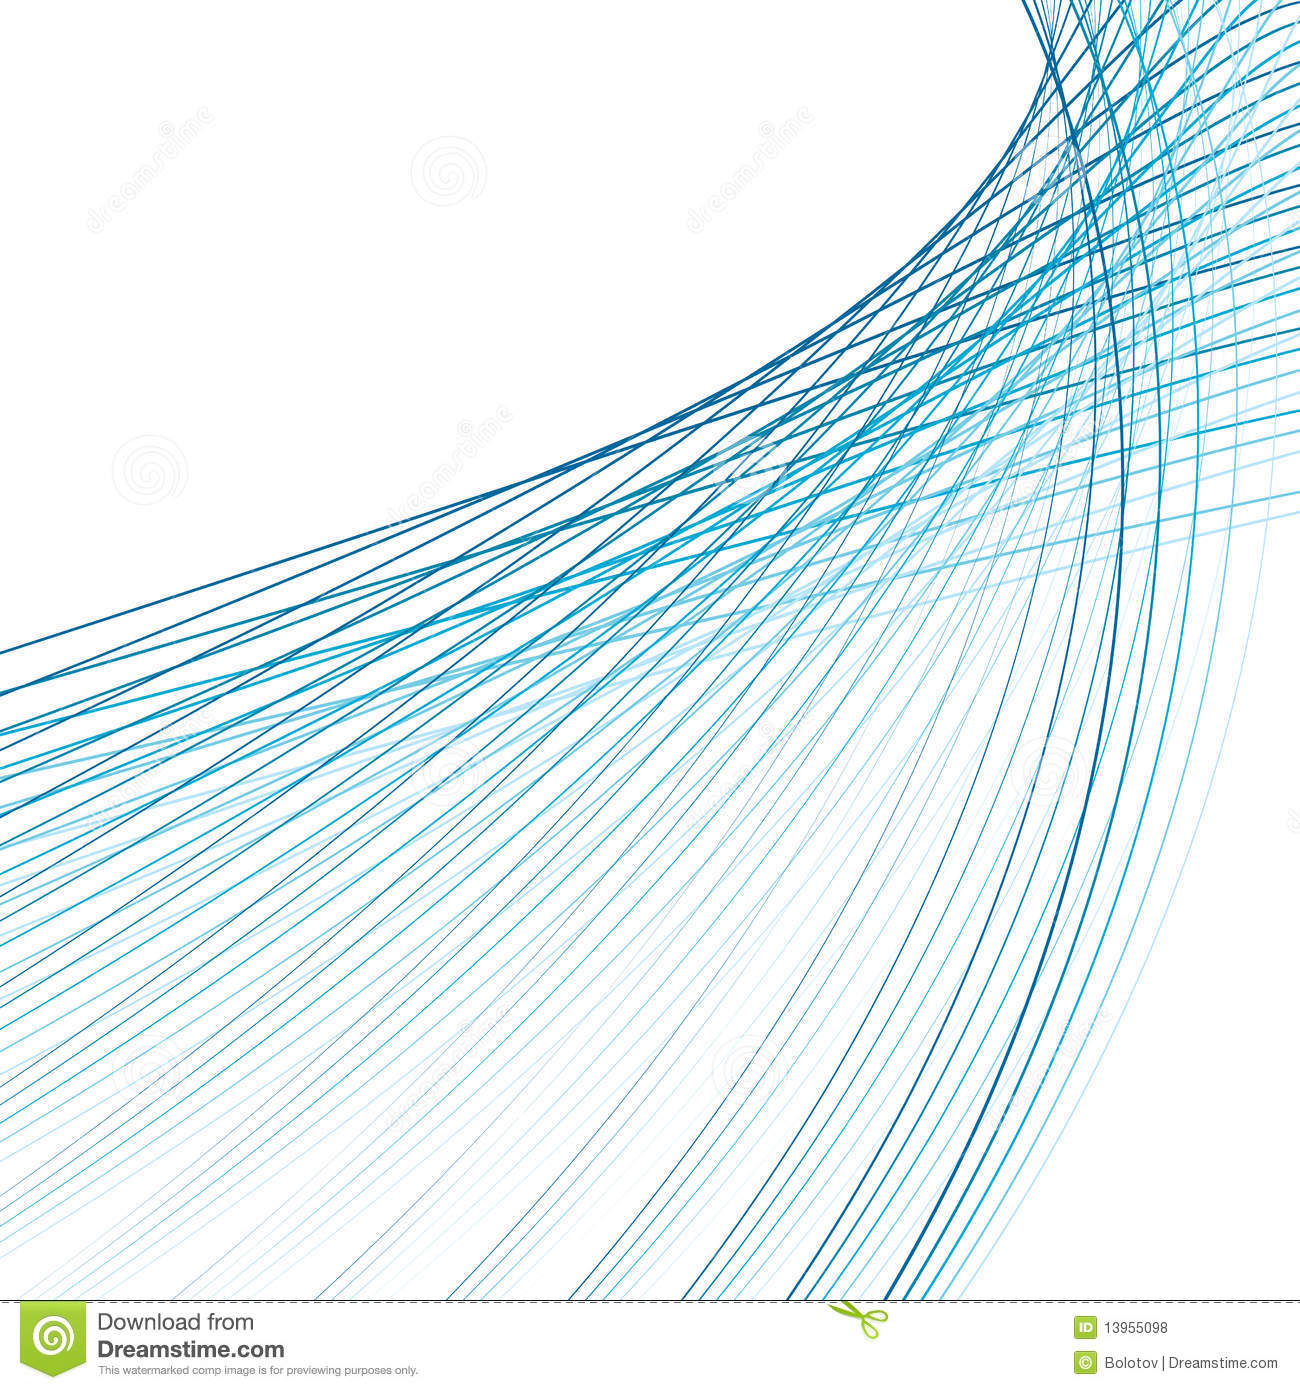 Line Art Design Background : Abstract line background royalty free stock photos